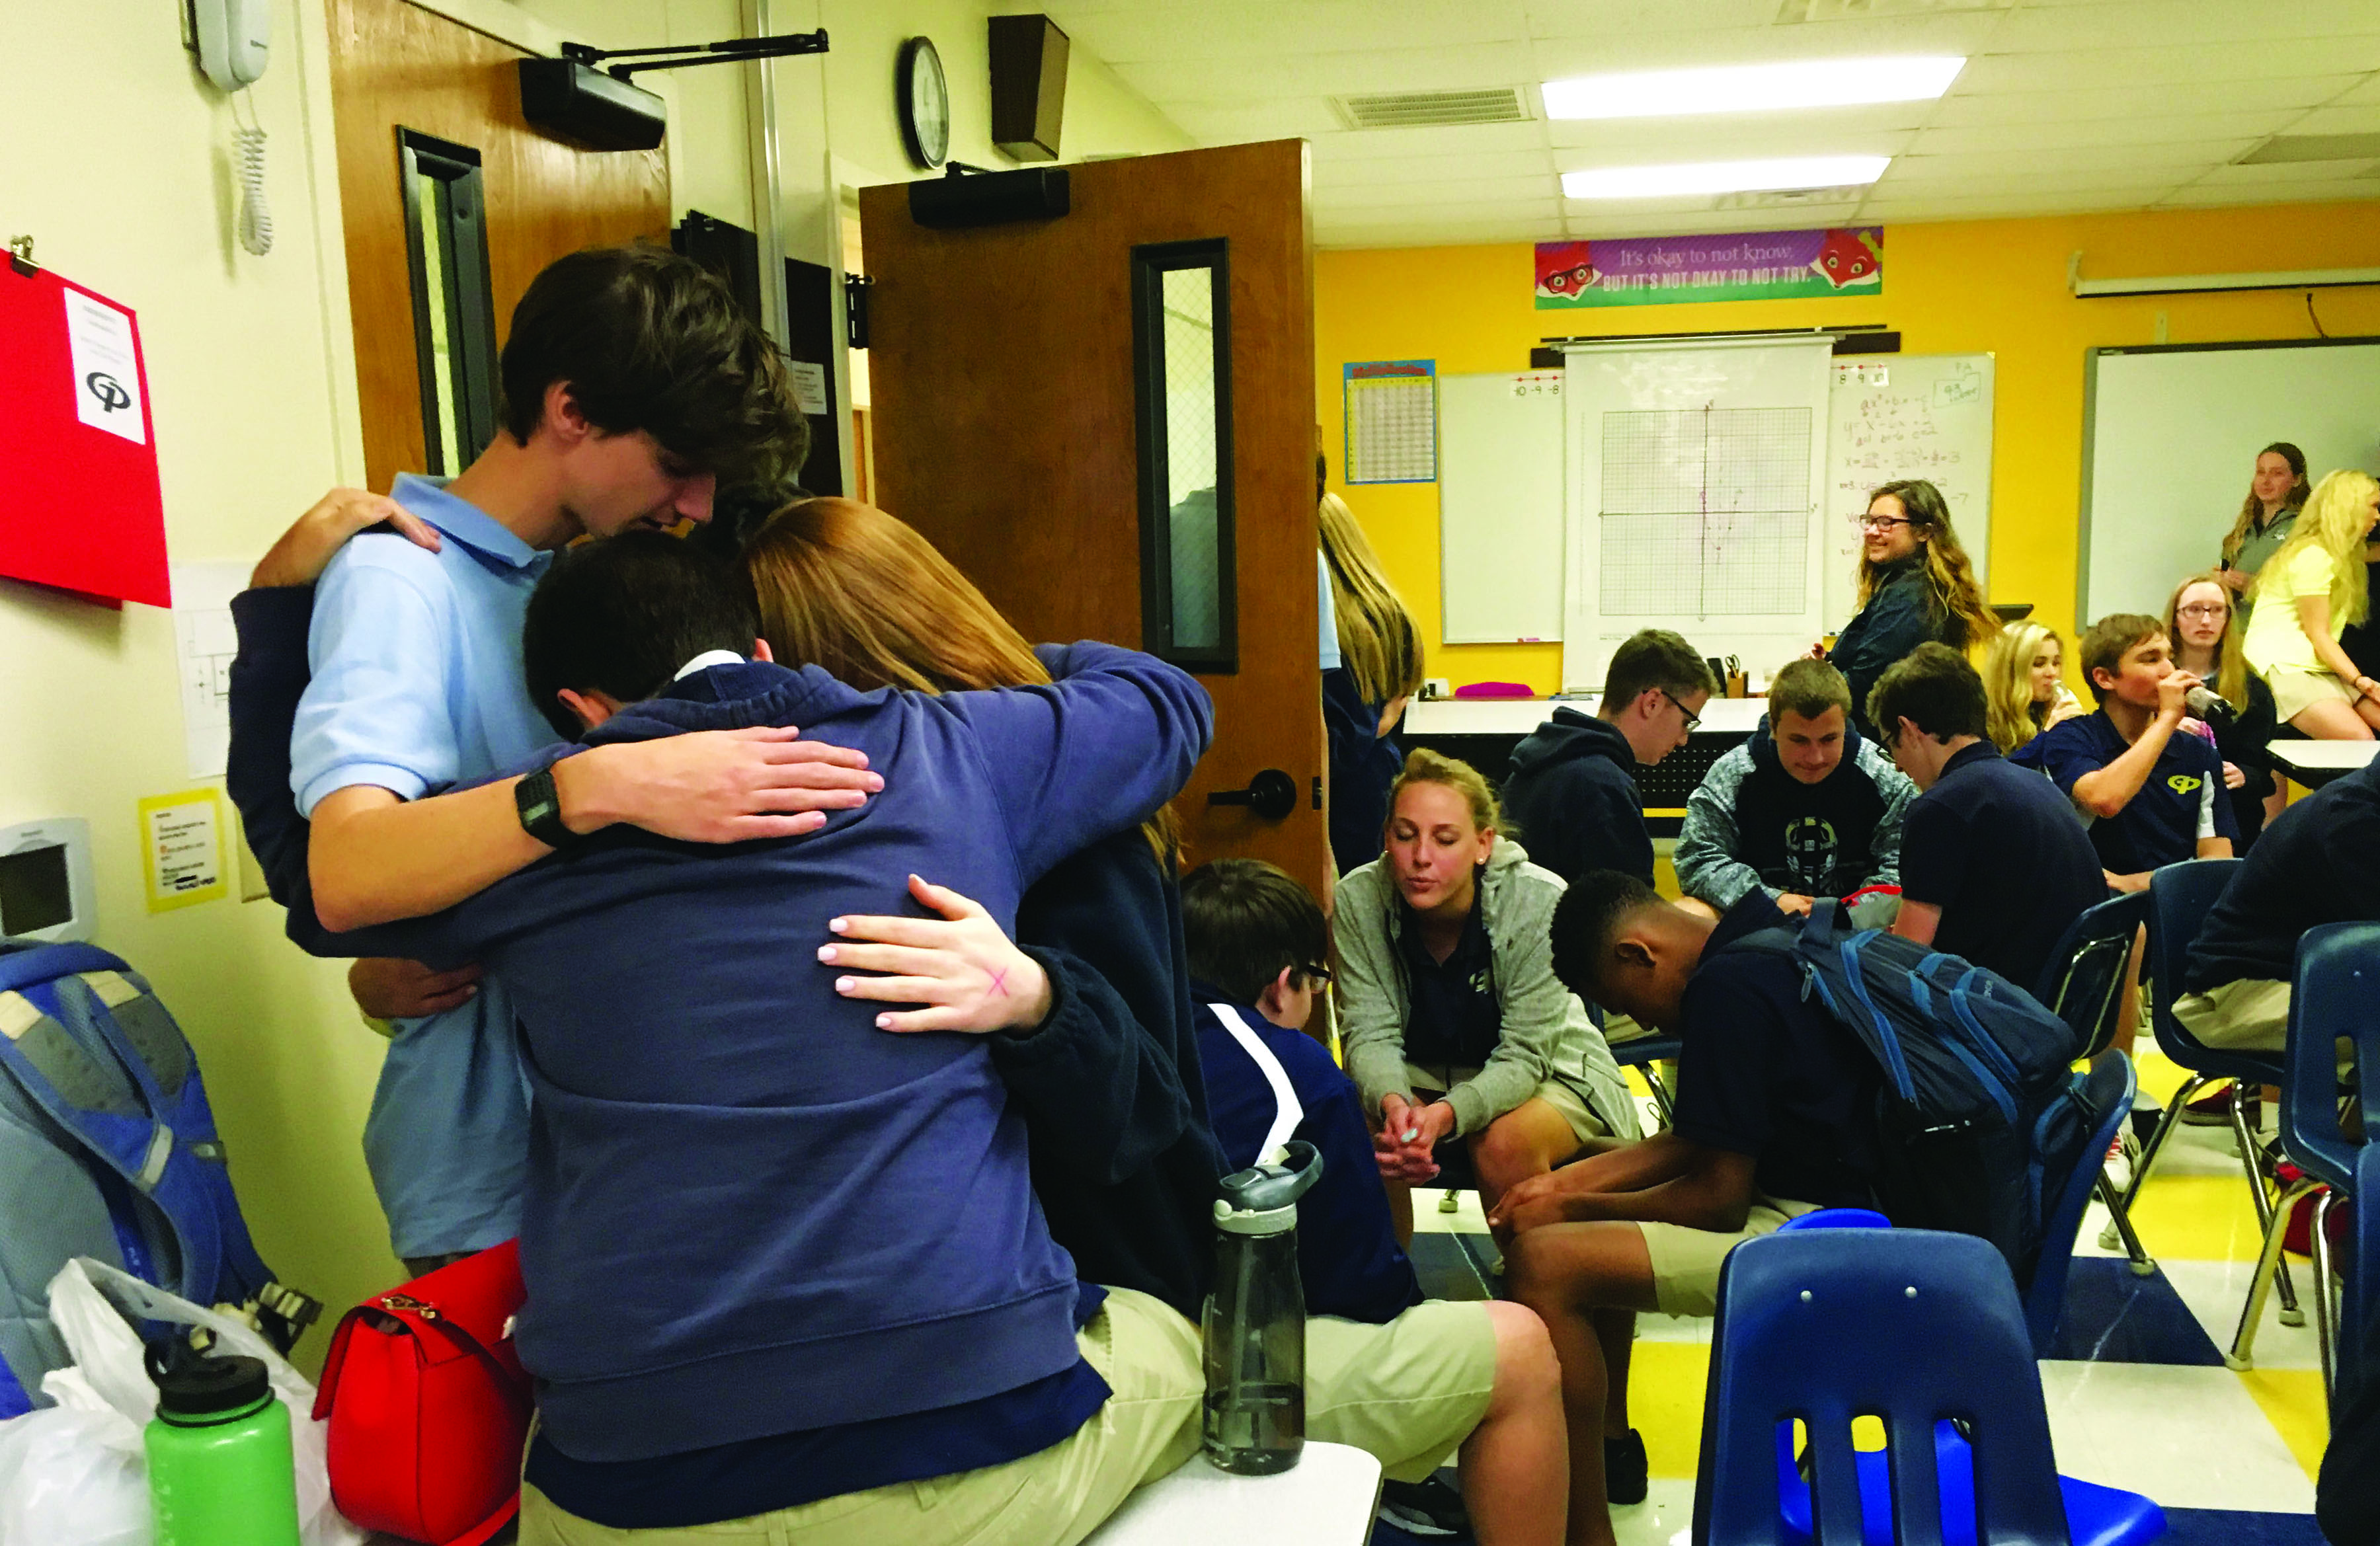 Revive is completely student-born and student-led. This allows students to feel free to spend time talking to each other and praying for each other.